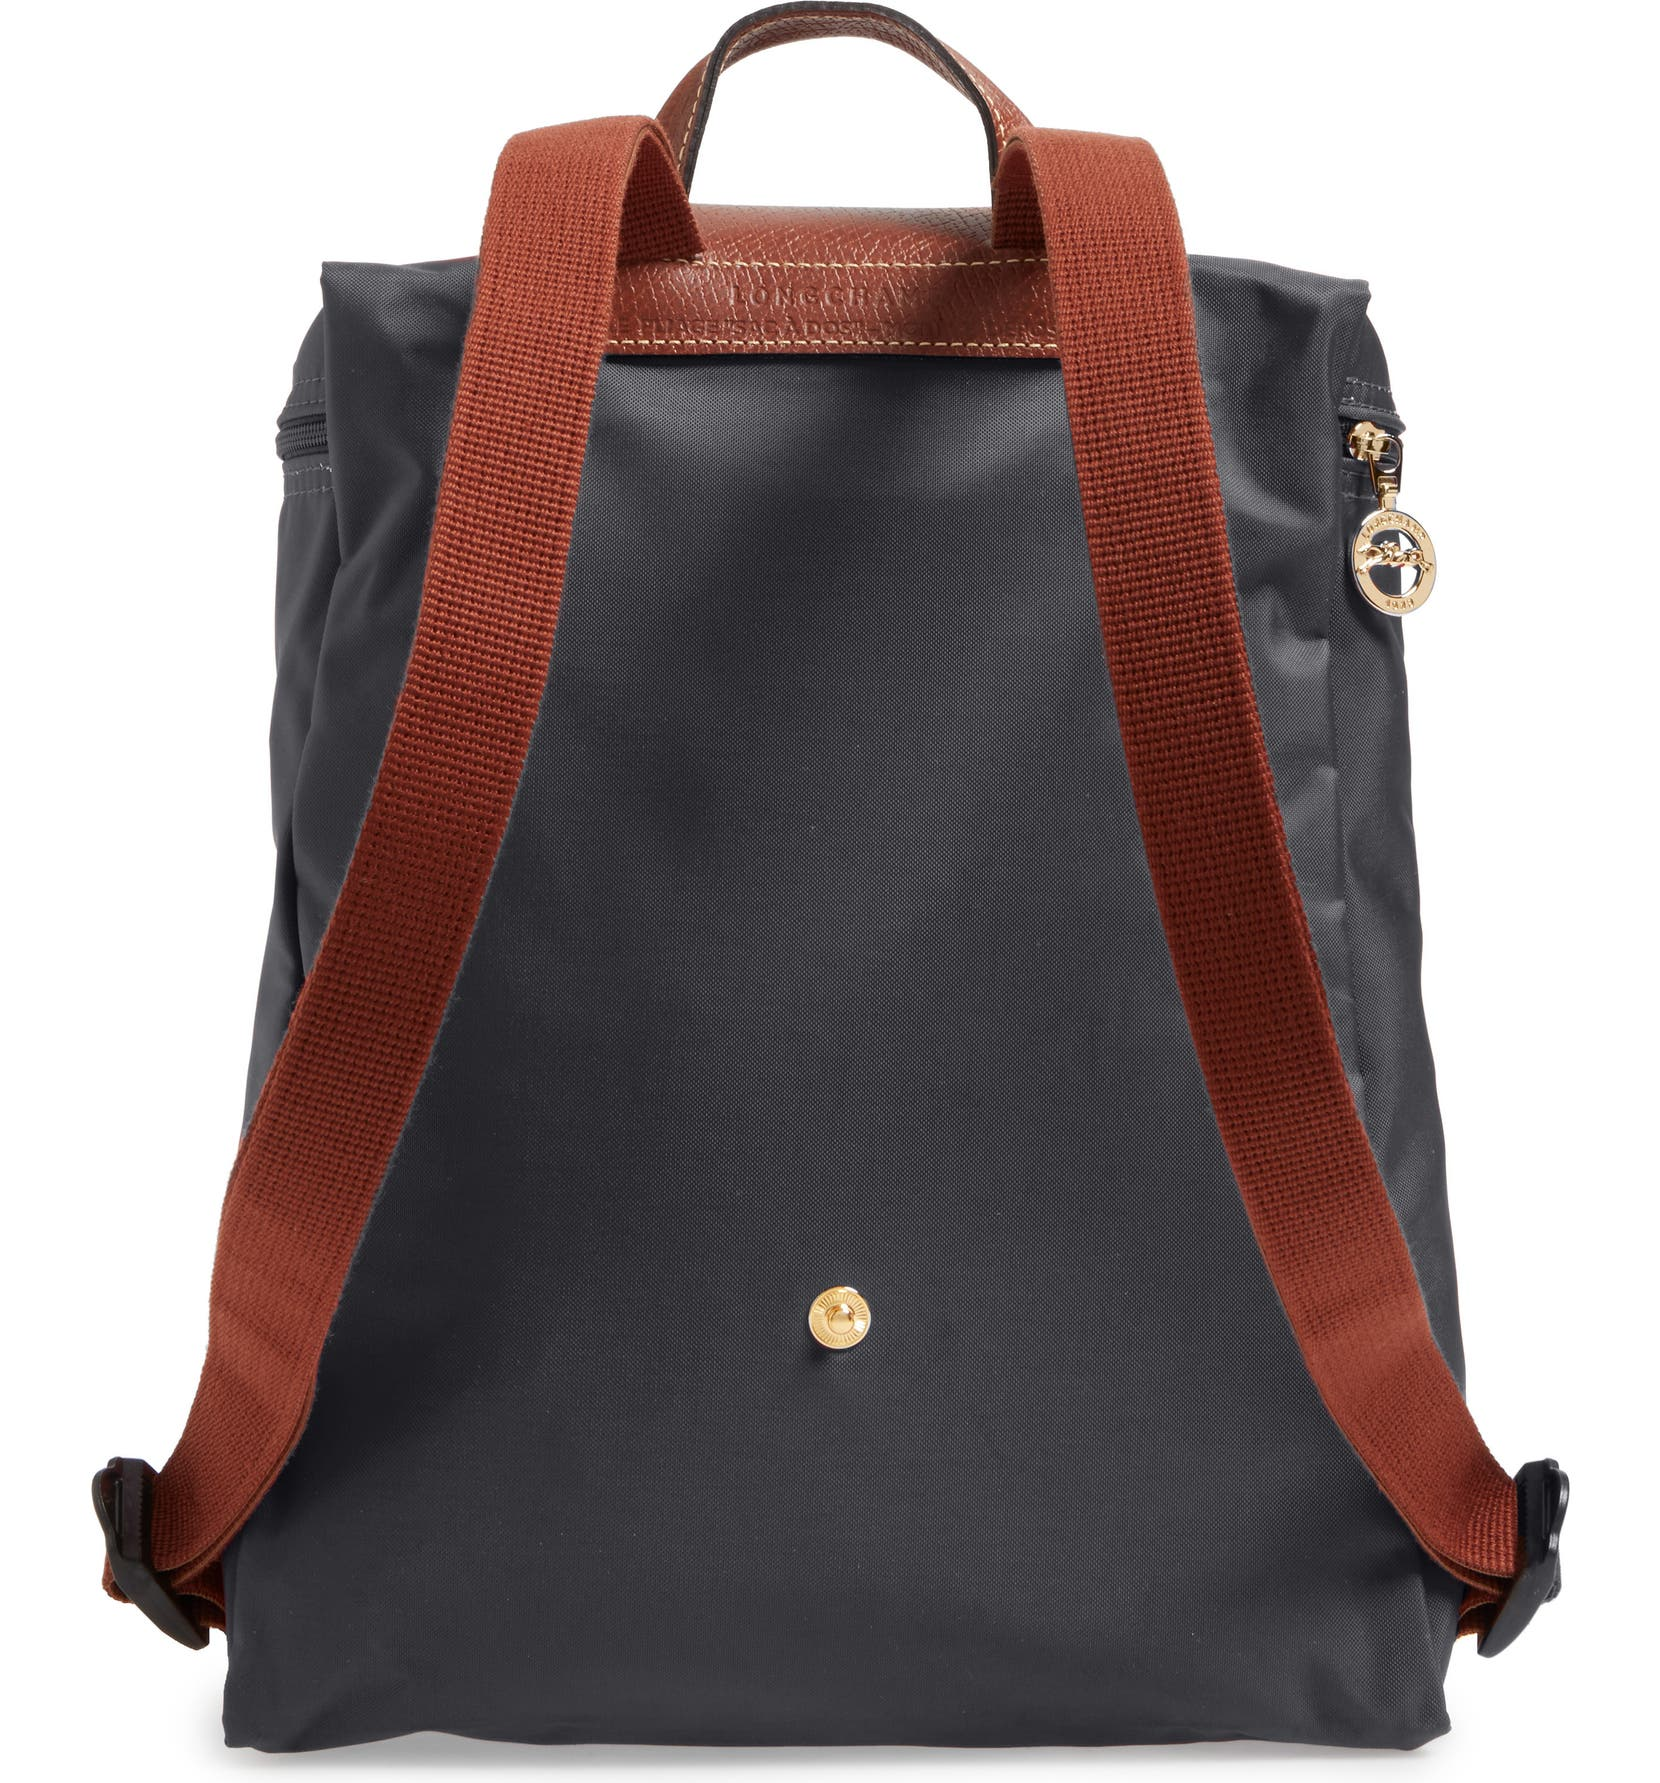 a41aad99dfe2 Longchamp  Le Pliage  Backpack